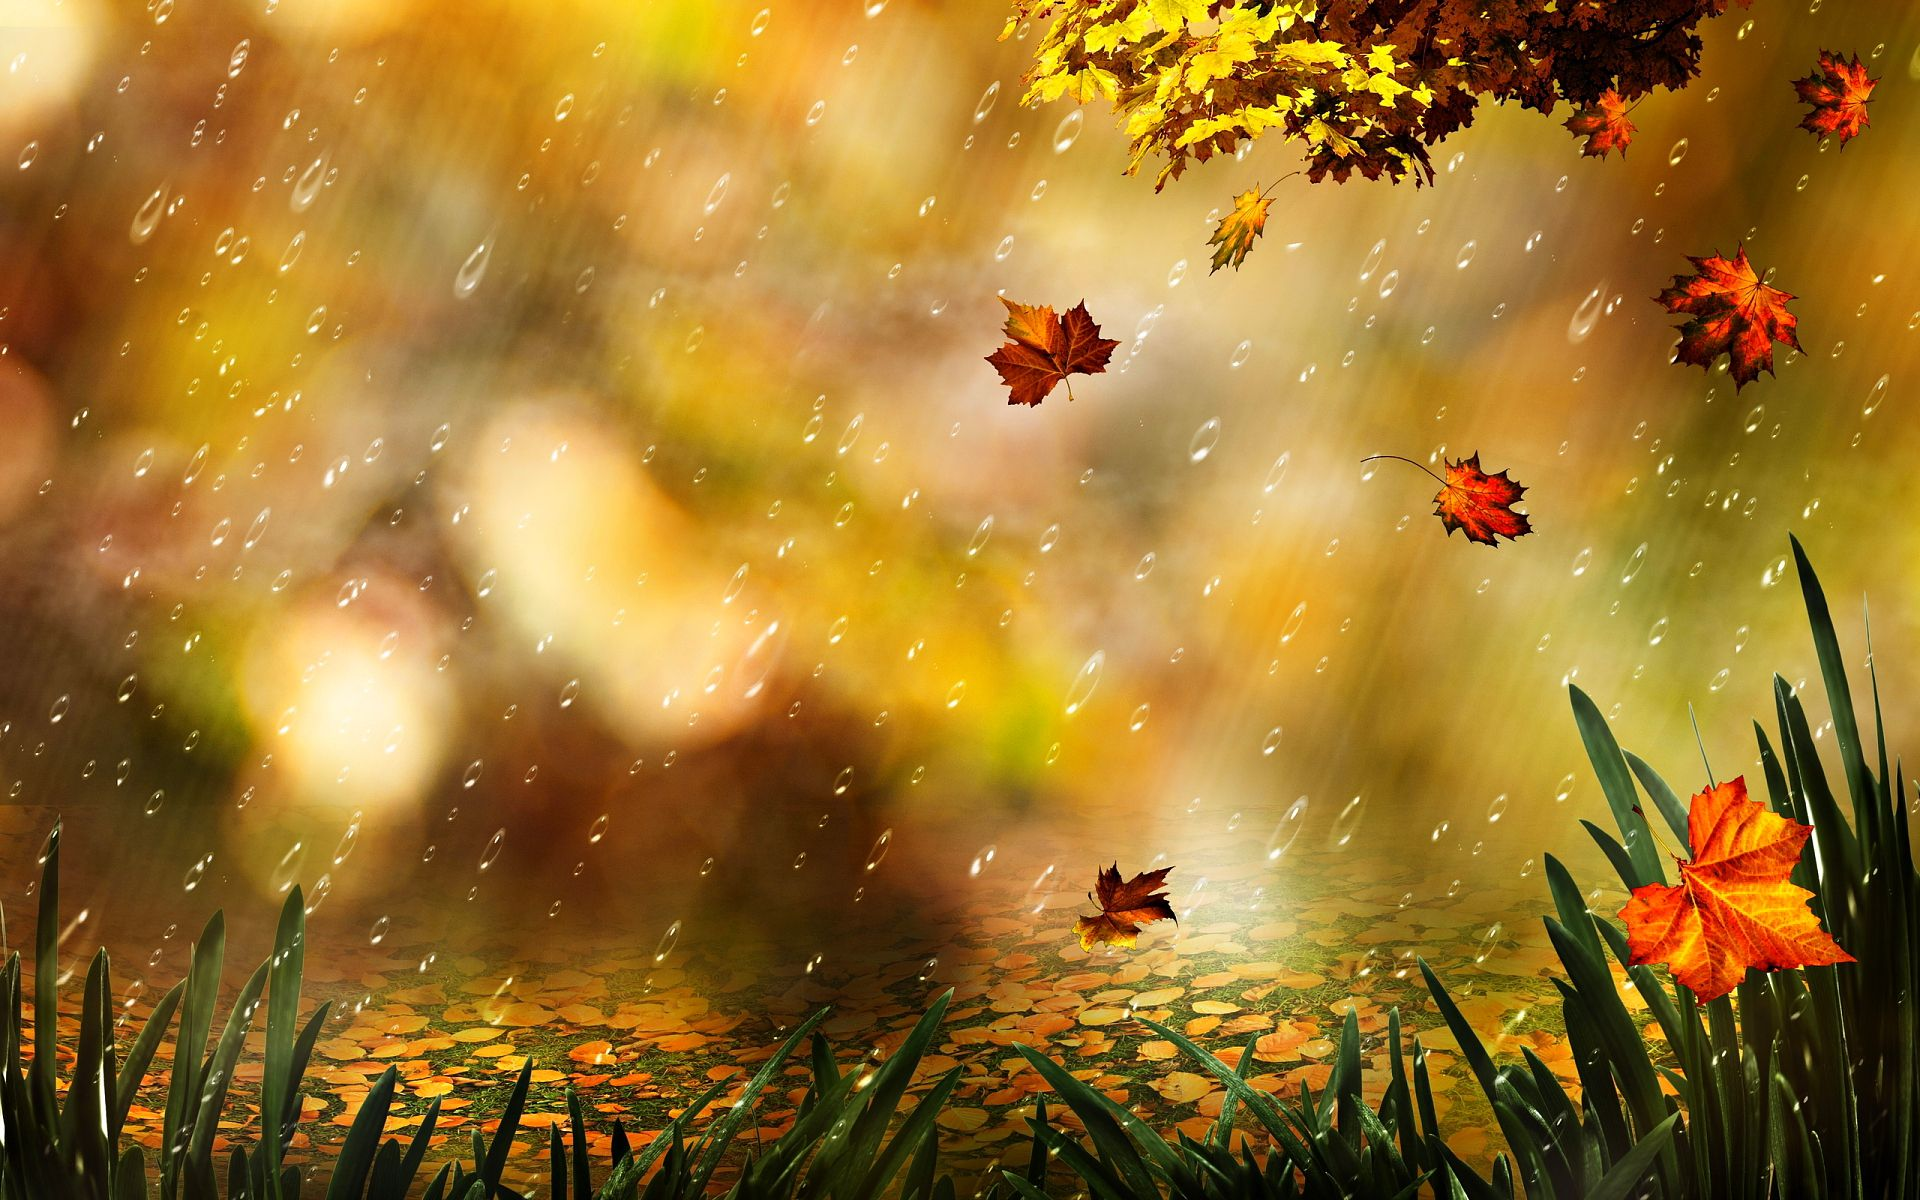 Abstract Rainy Autumn Rain Wallpapers Hd Comfort Calm